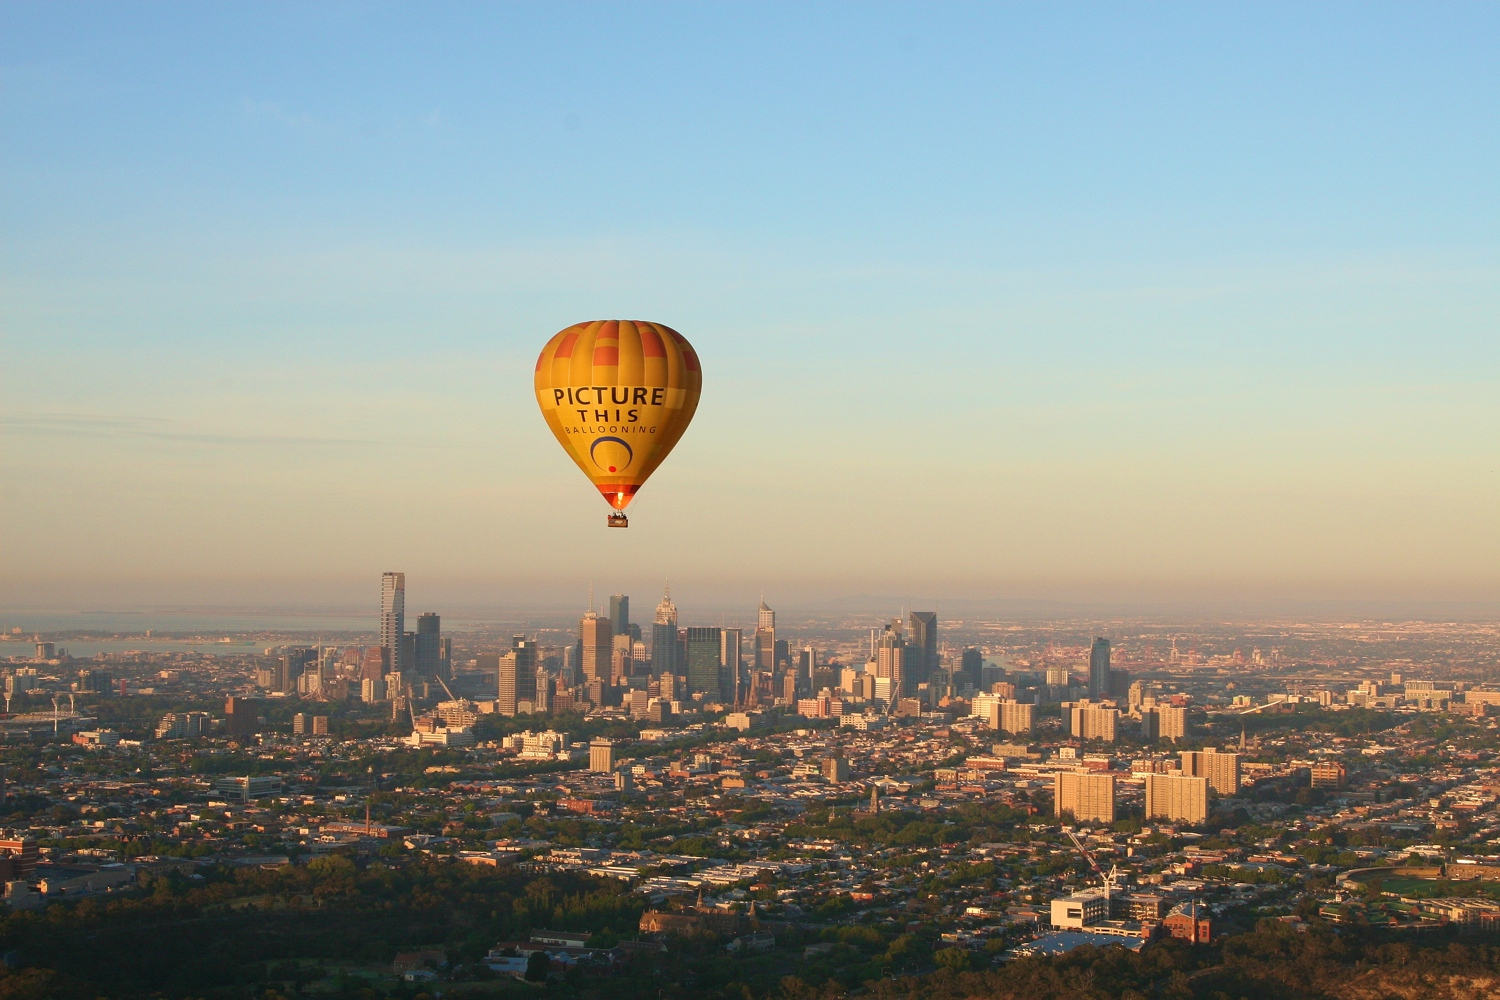 Picture This Hot Air Balloon over Melbourne 5.jpeg